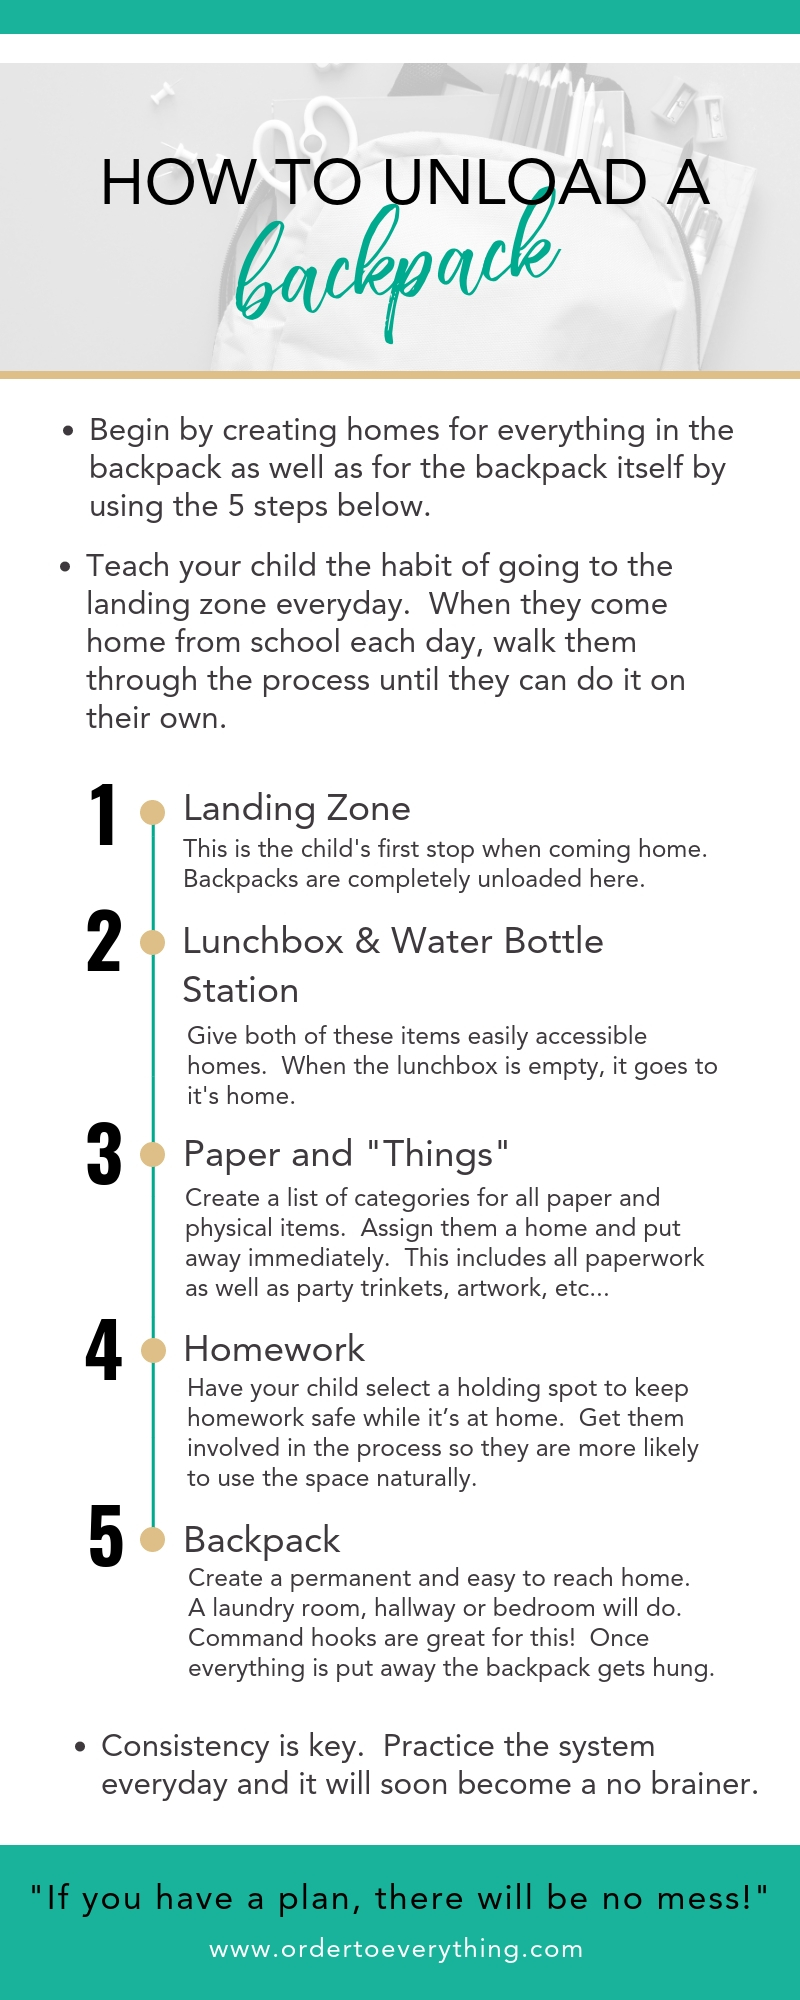 How To Unload A Backpack Infographic (1).jpg